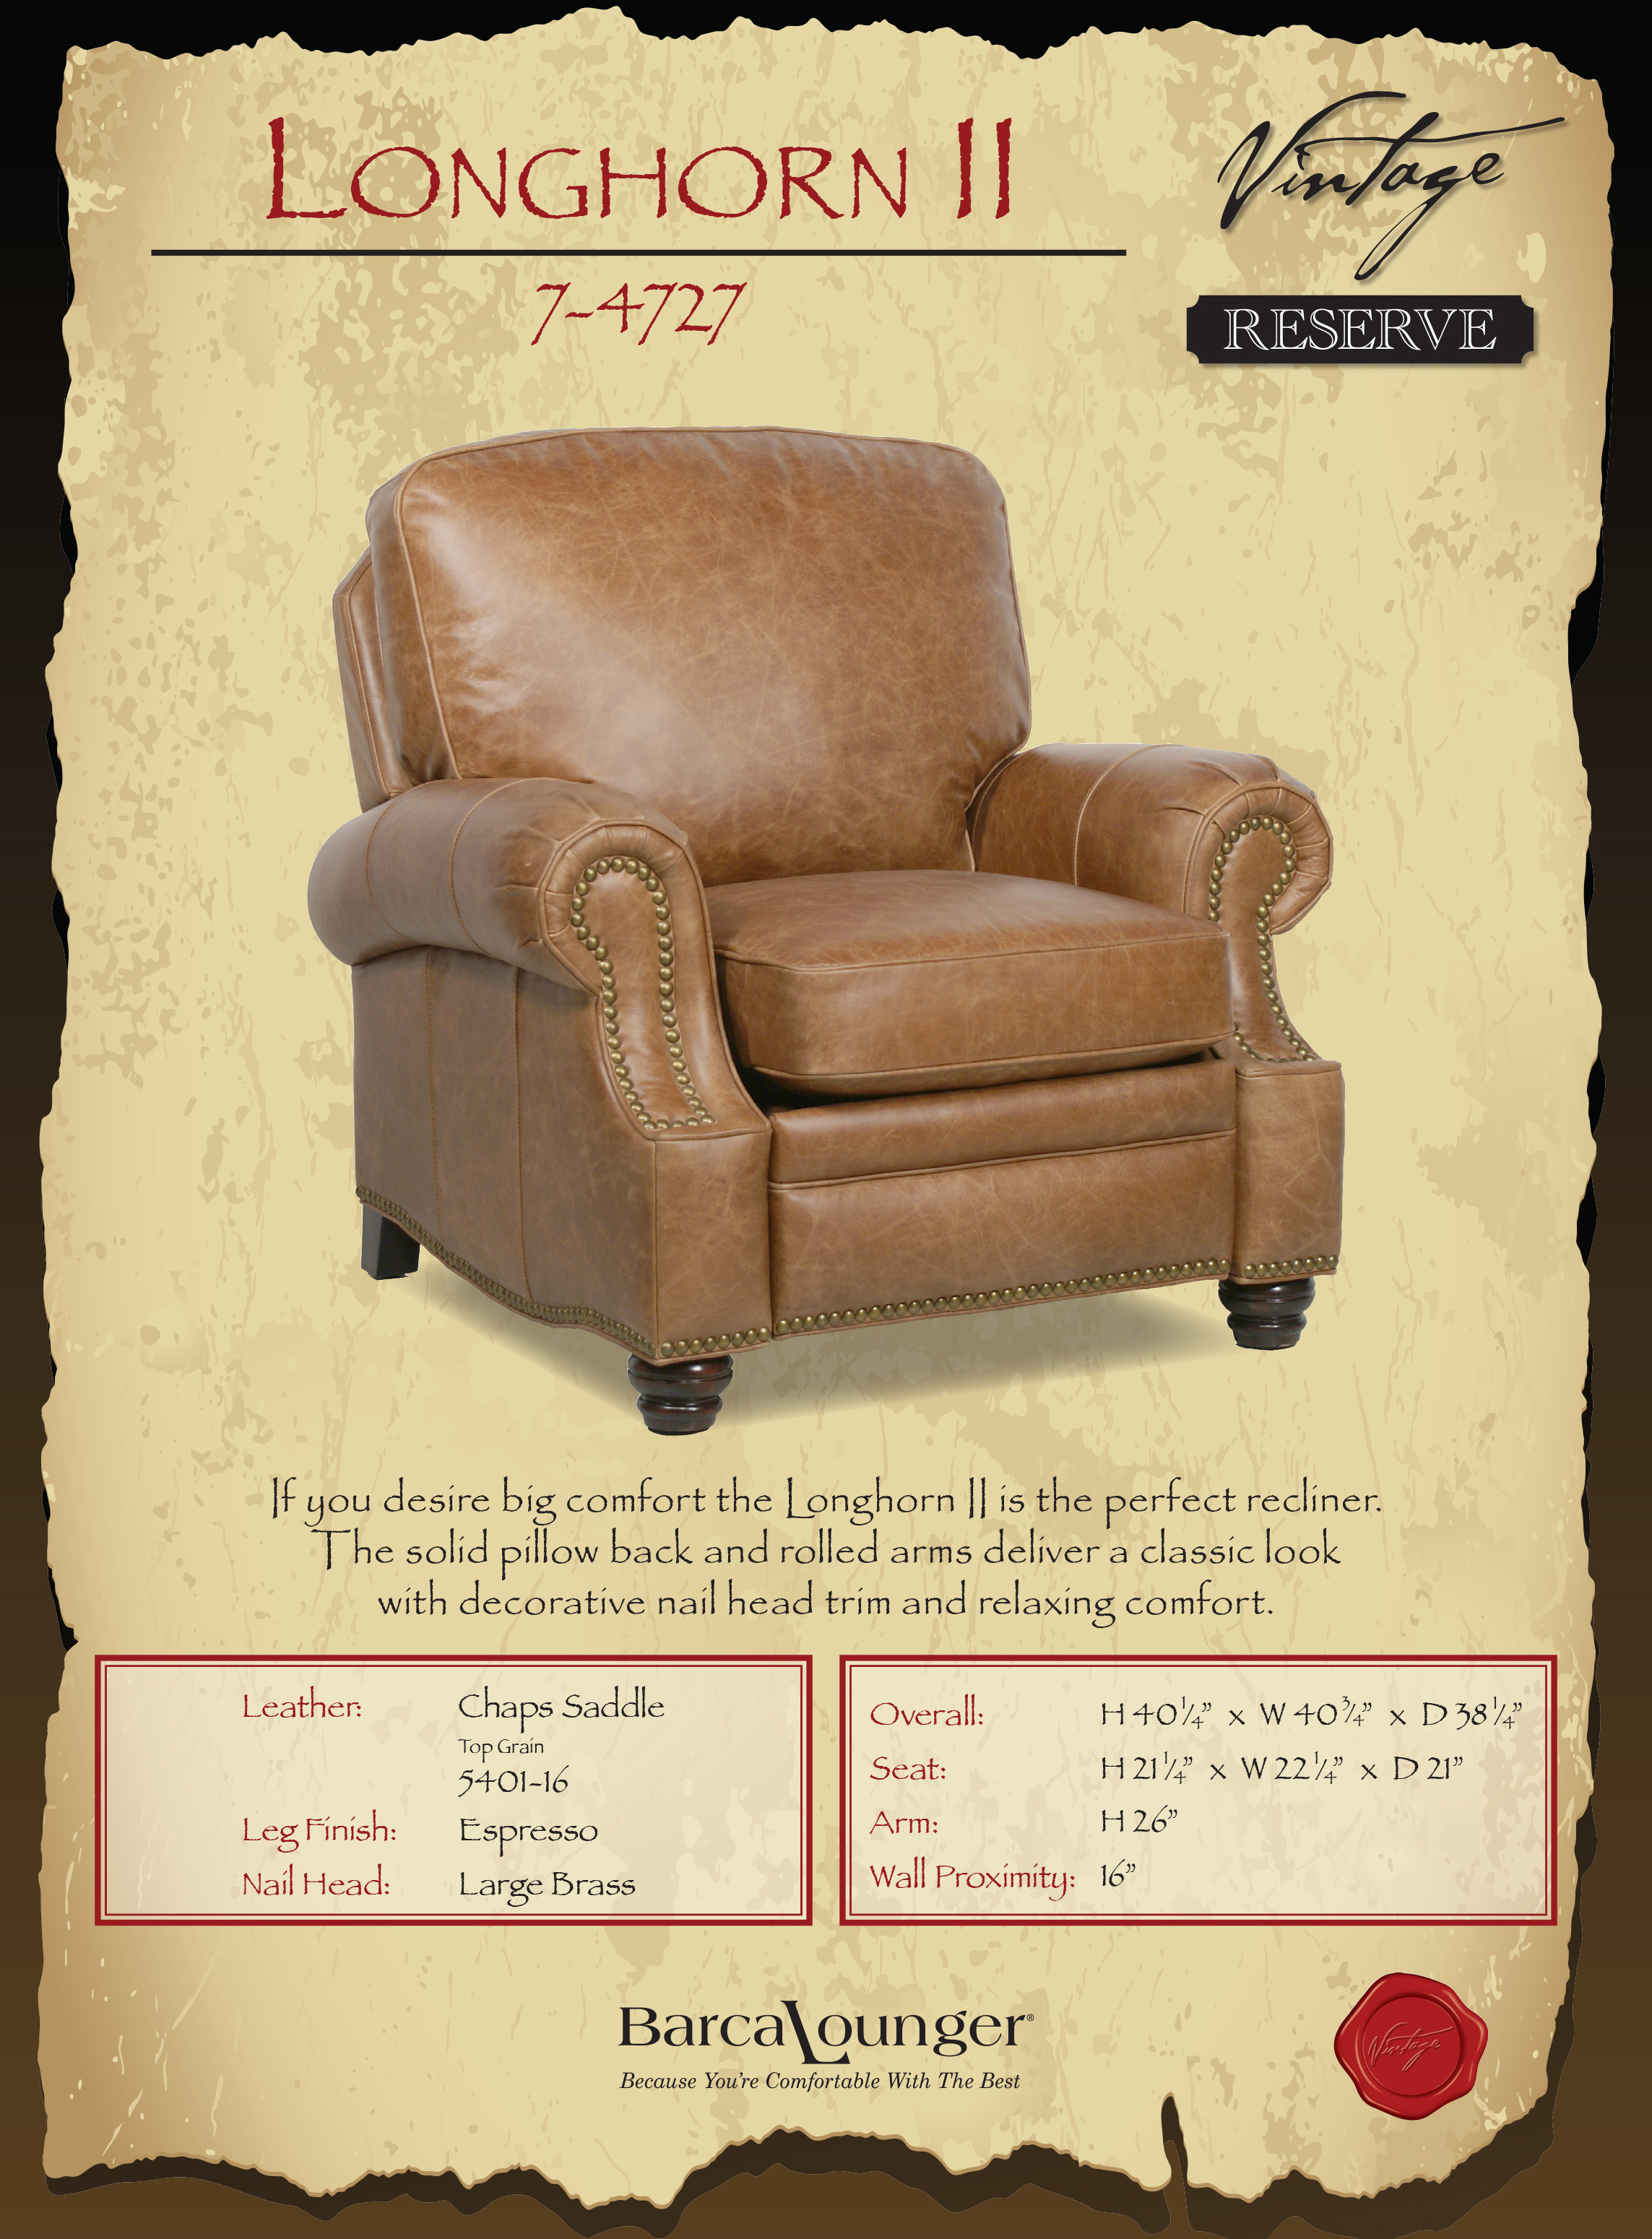 Swell Stressless Sofa Loveseat Recliner Chair And Ottoman By Ekornes Bralicious Painted Fabric Chair Ideas Braliciousco